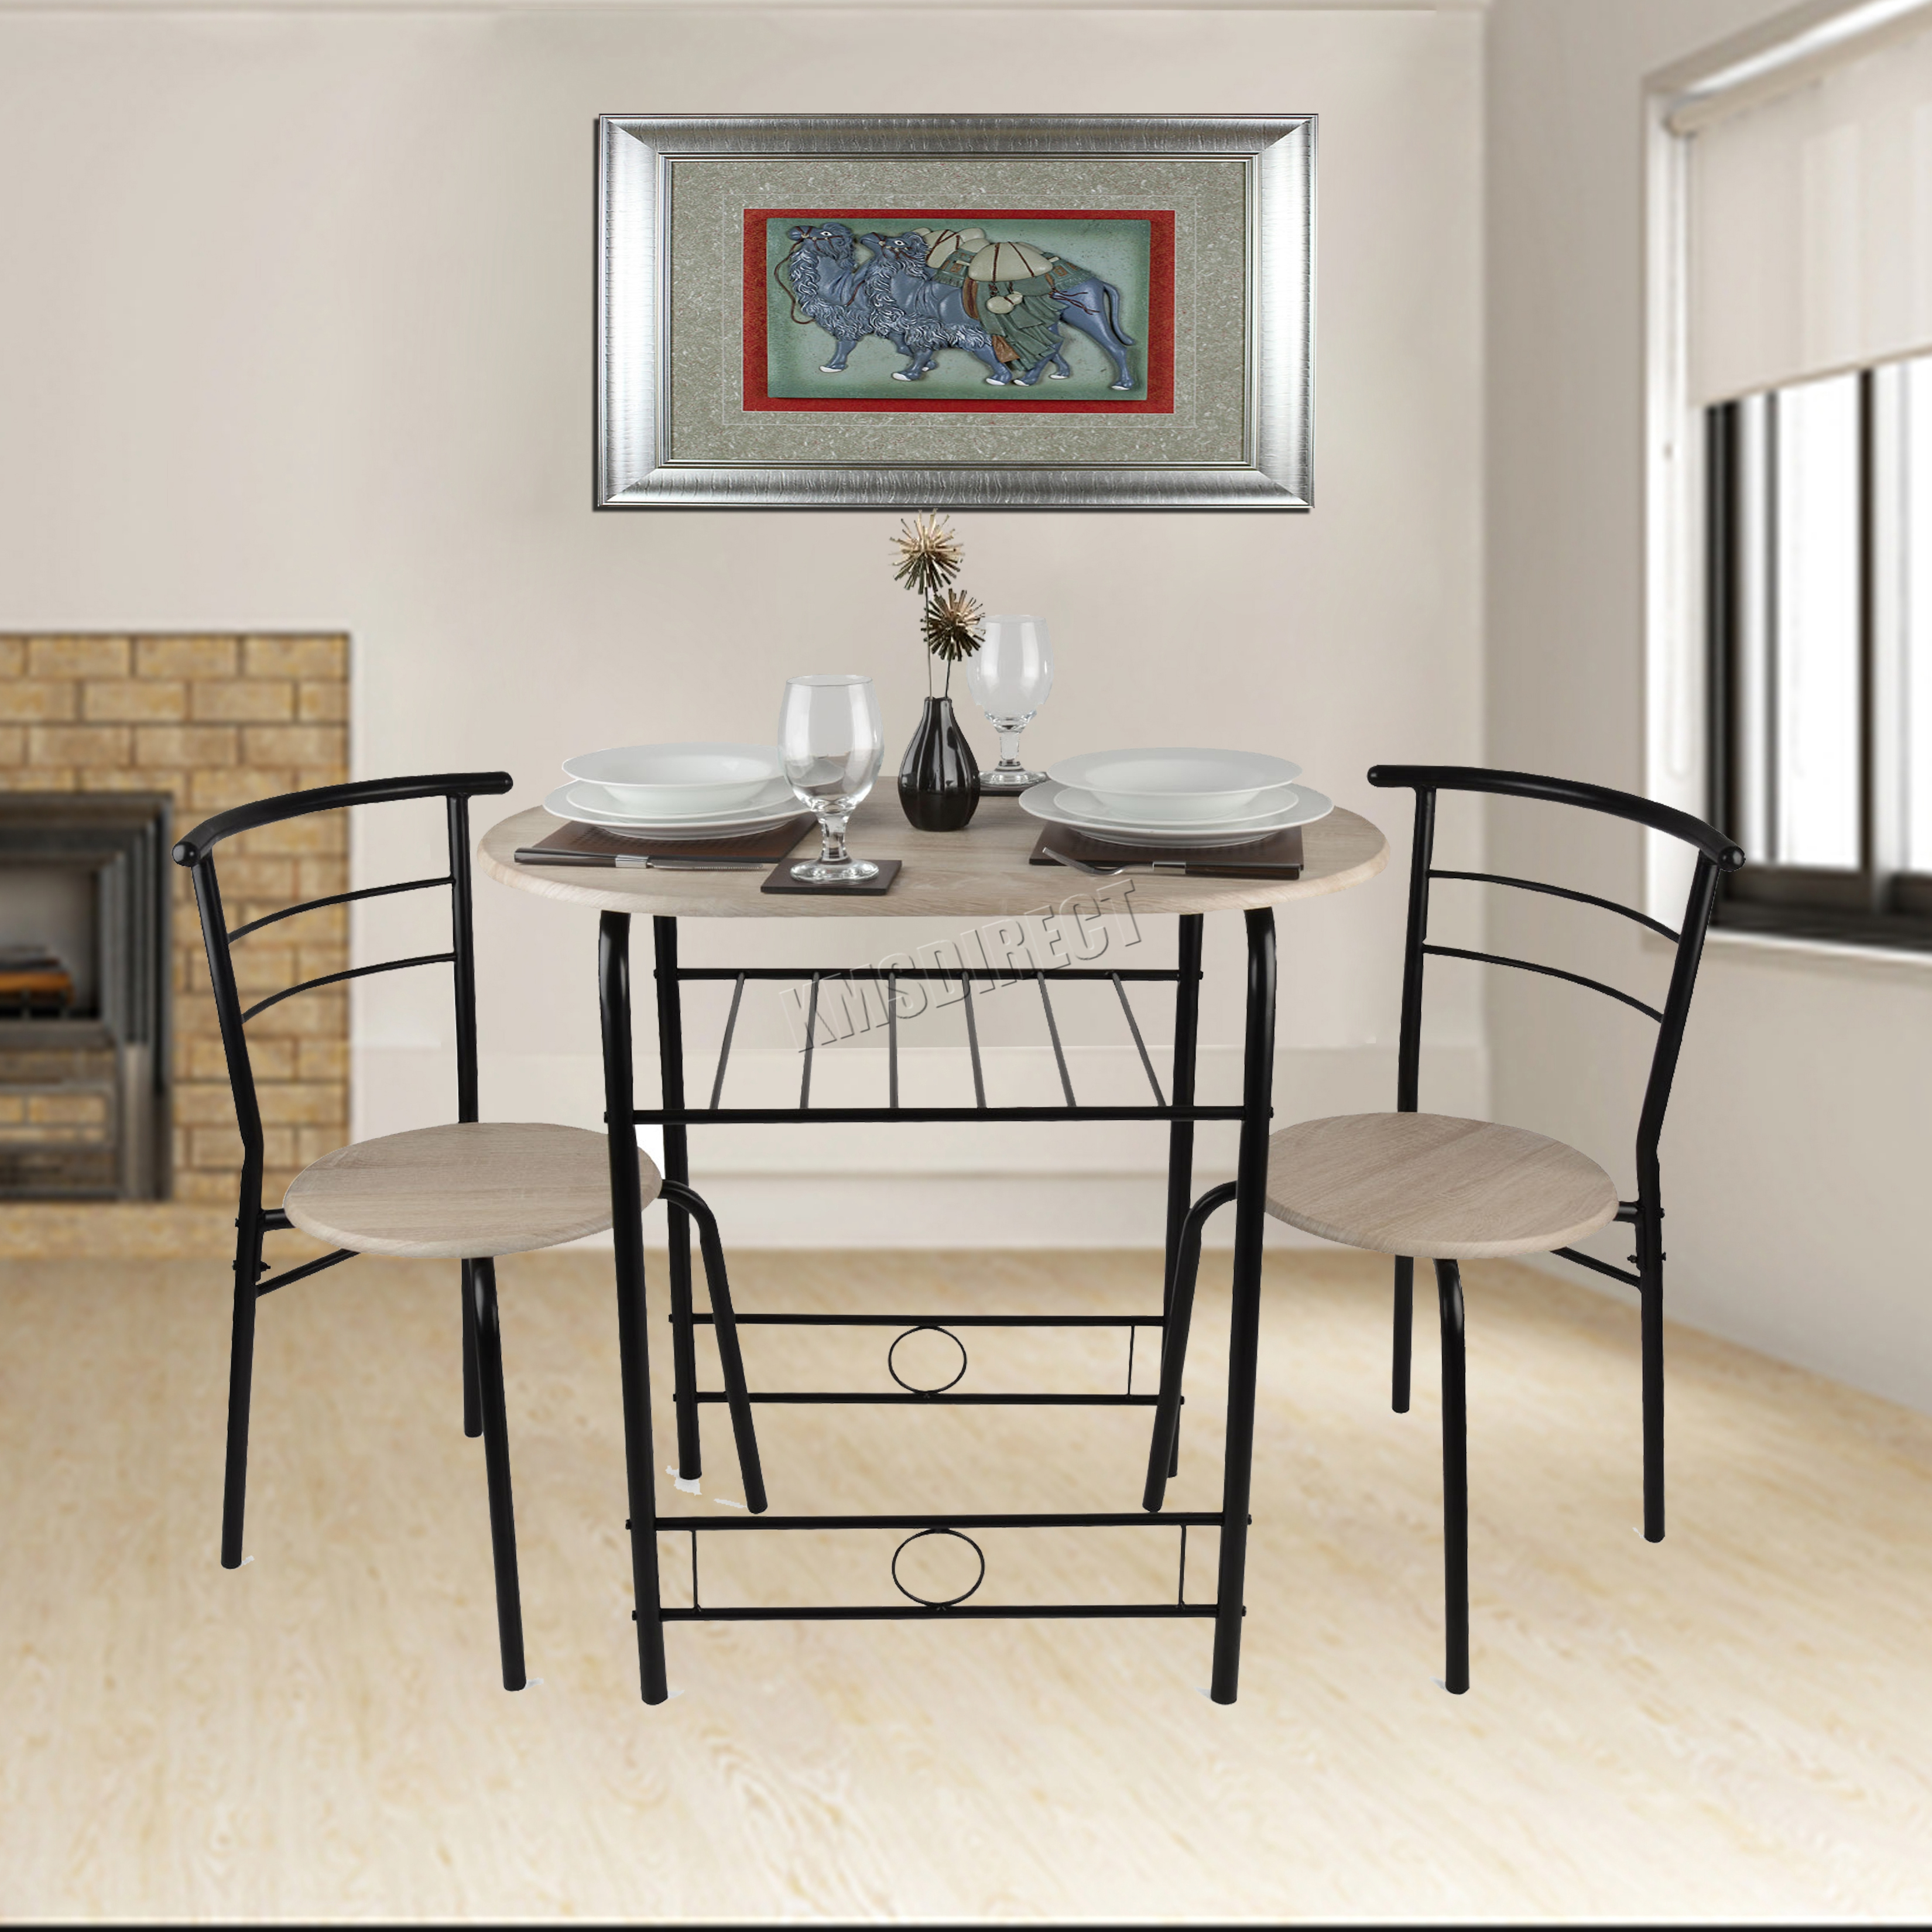 FoxHunter Compact Dining Table Breakfast Bar 2 Chair